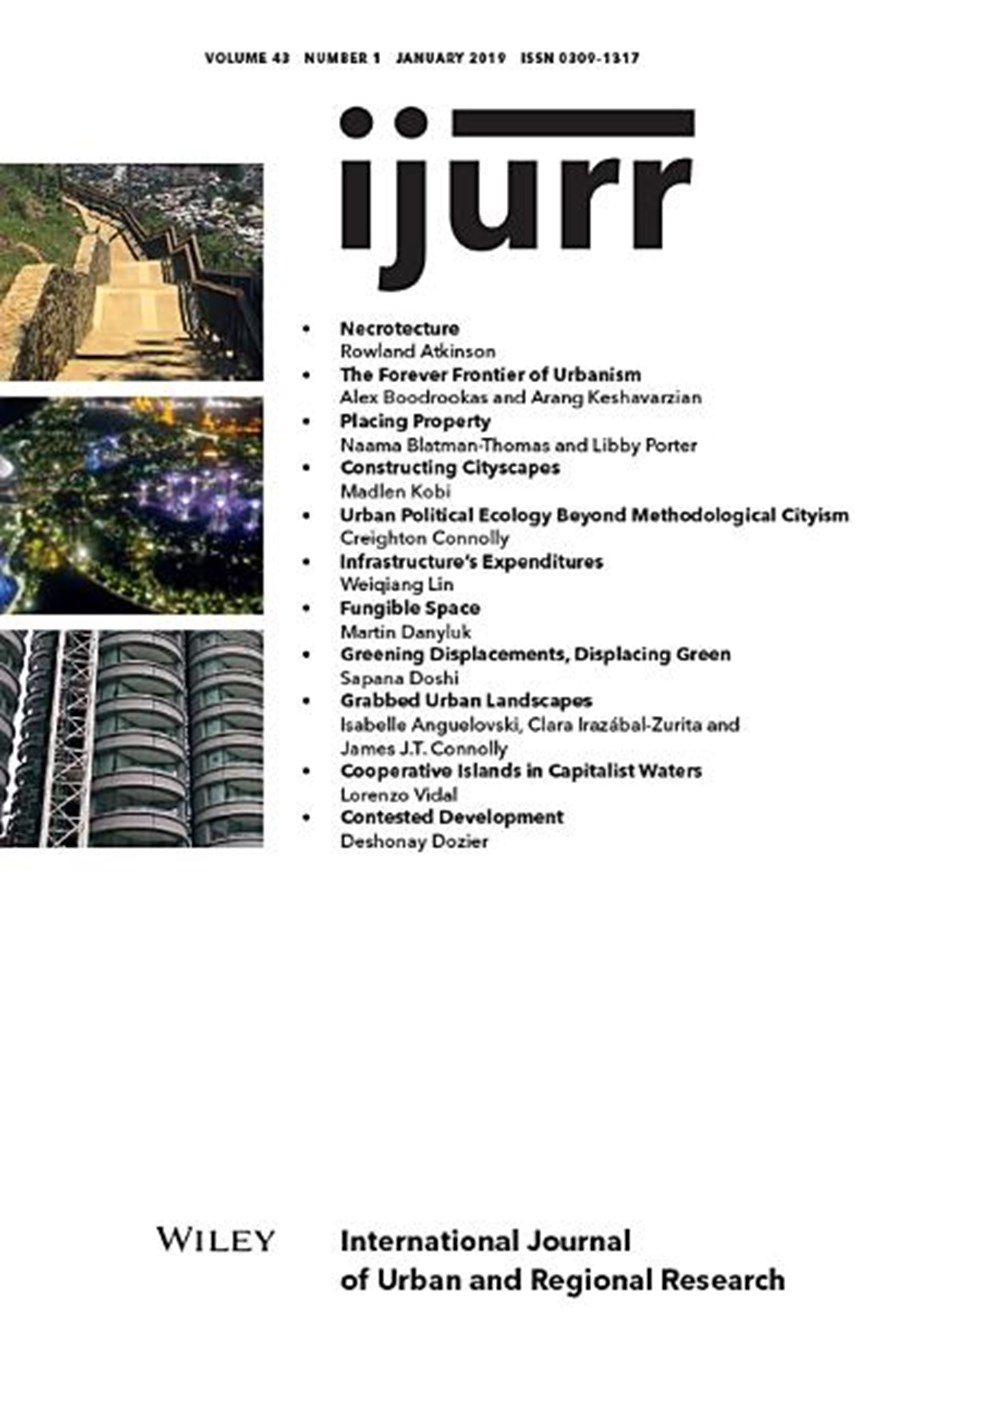 International Journal of Urban and Regional Research, Volume 43, Issue 1